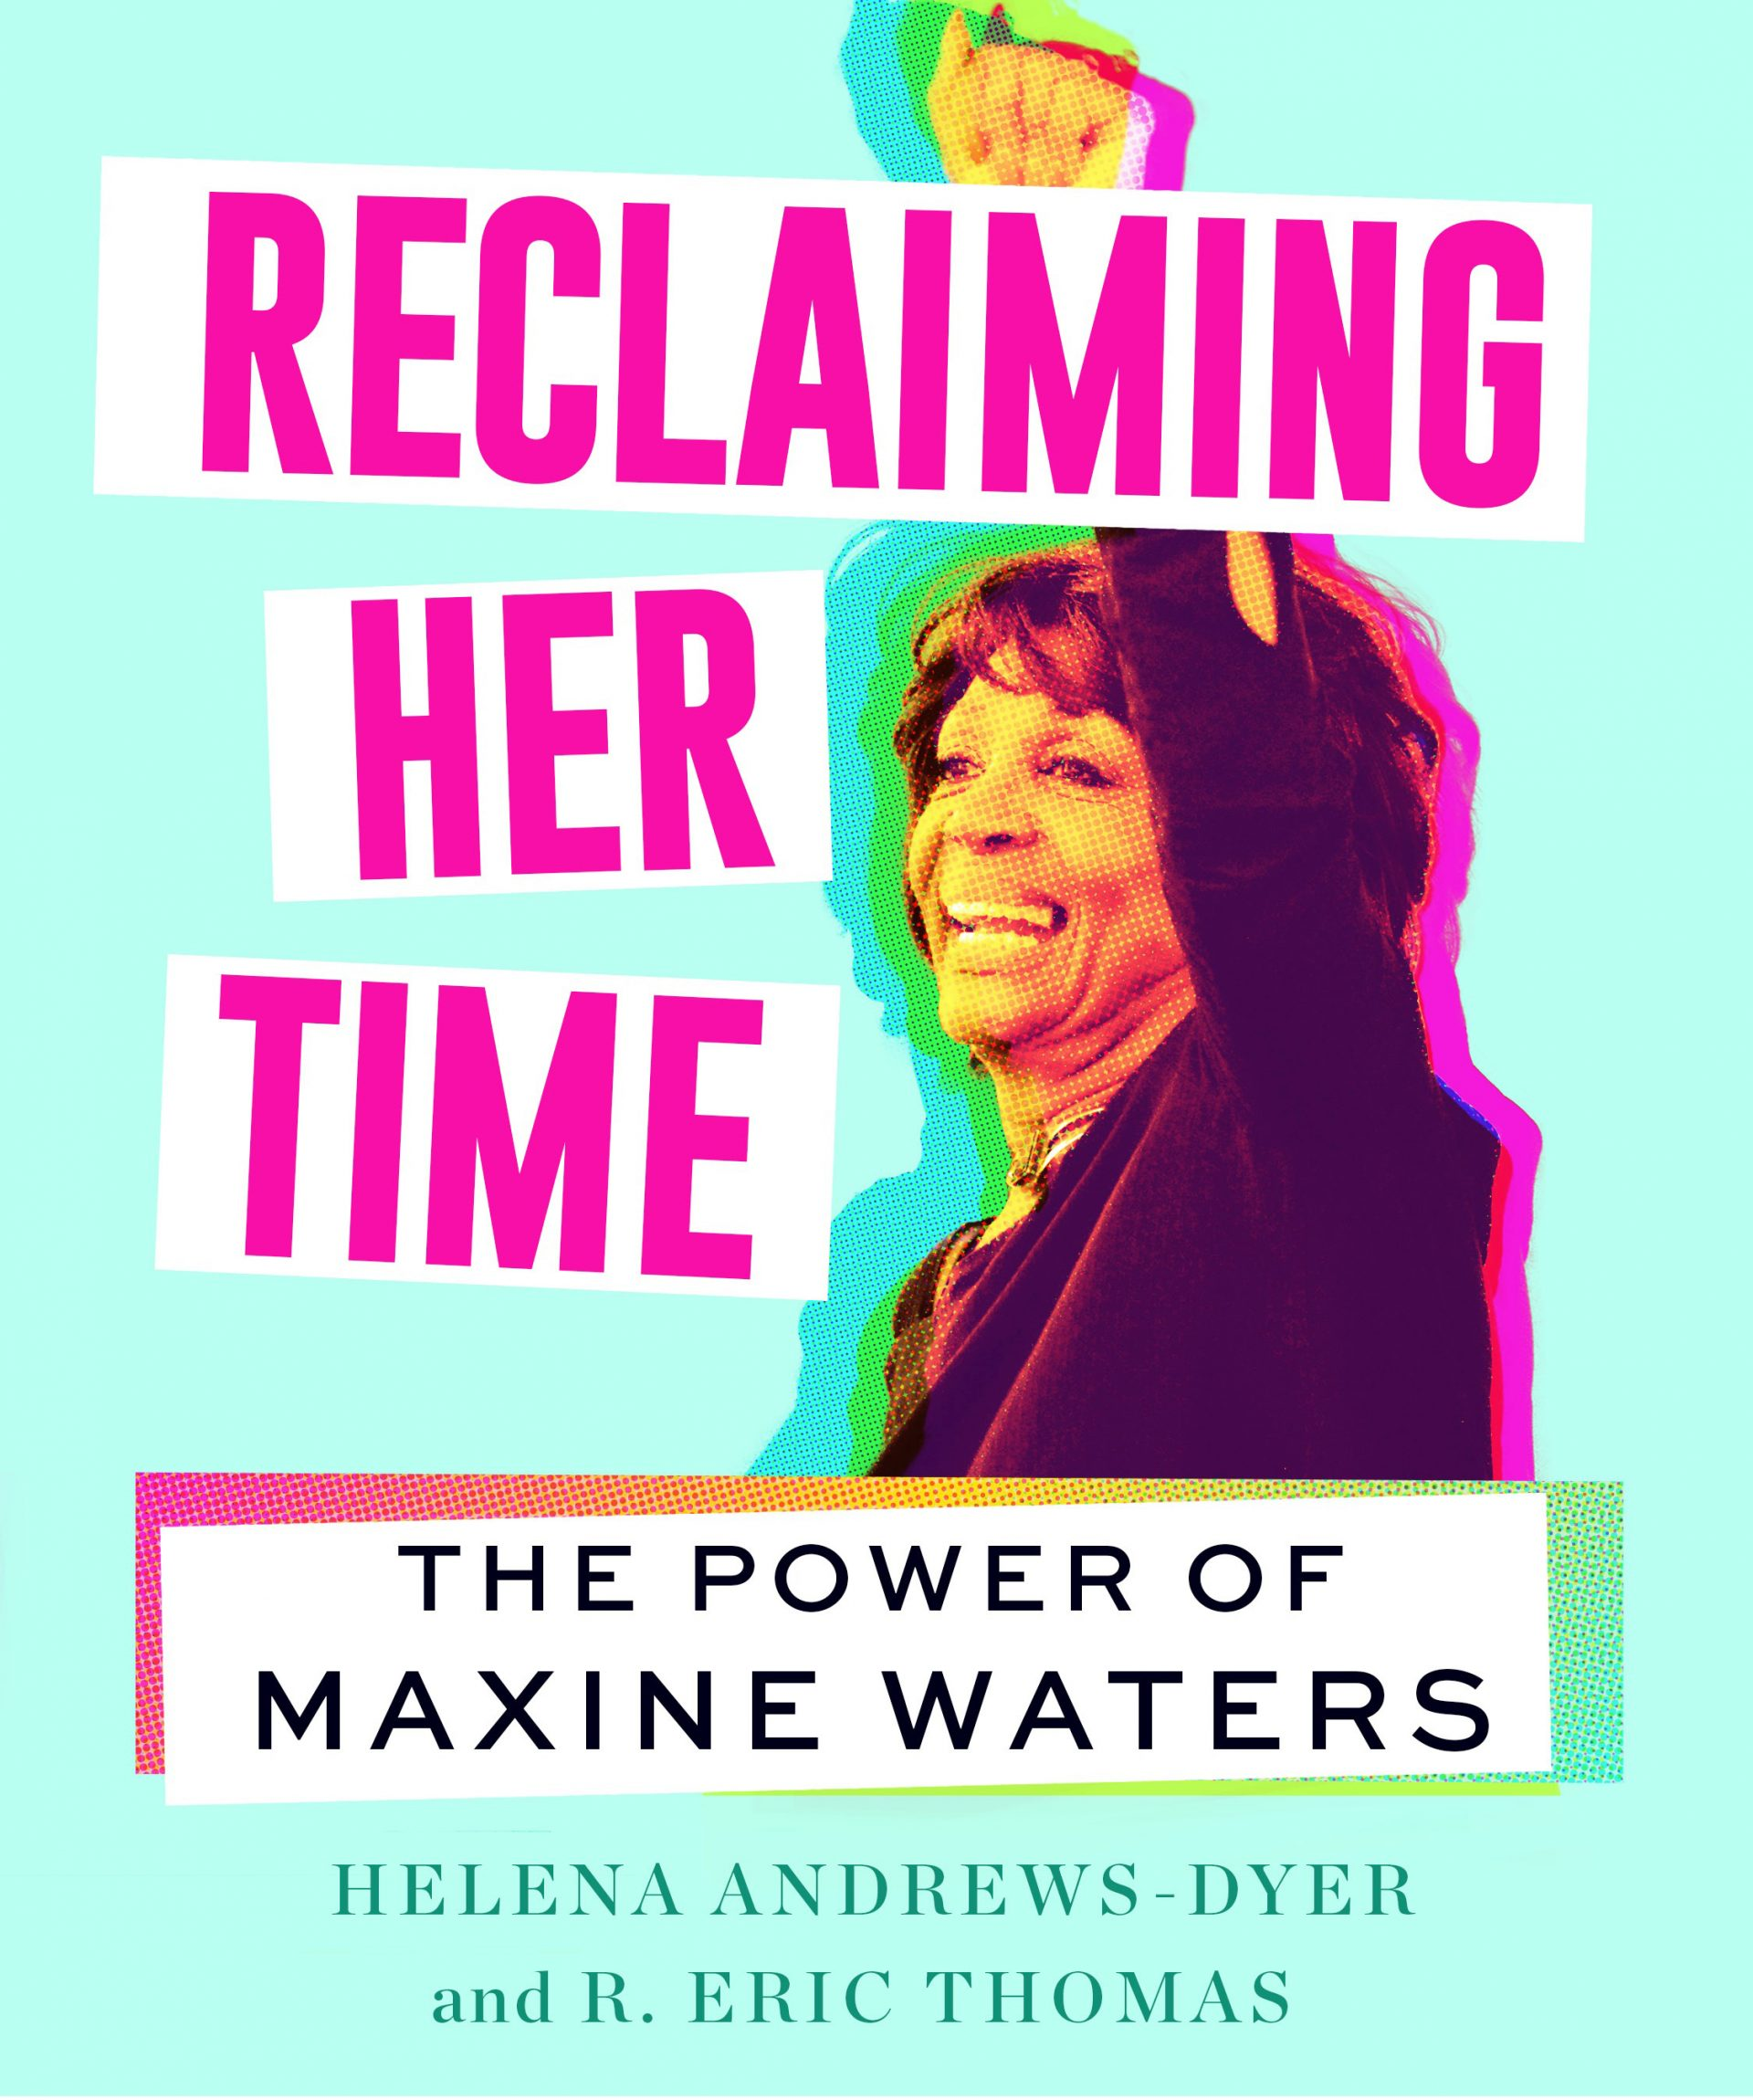 NDG Book Review: 'Reclaiming Her Time' is informative and light